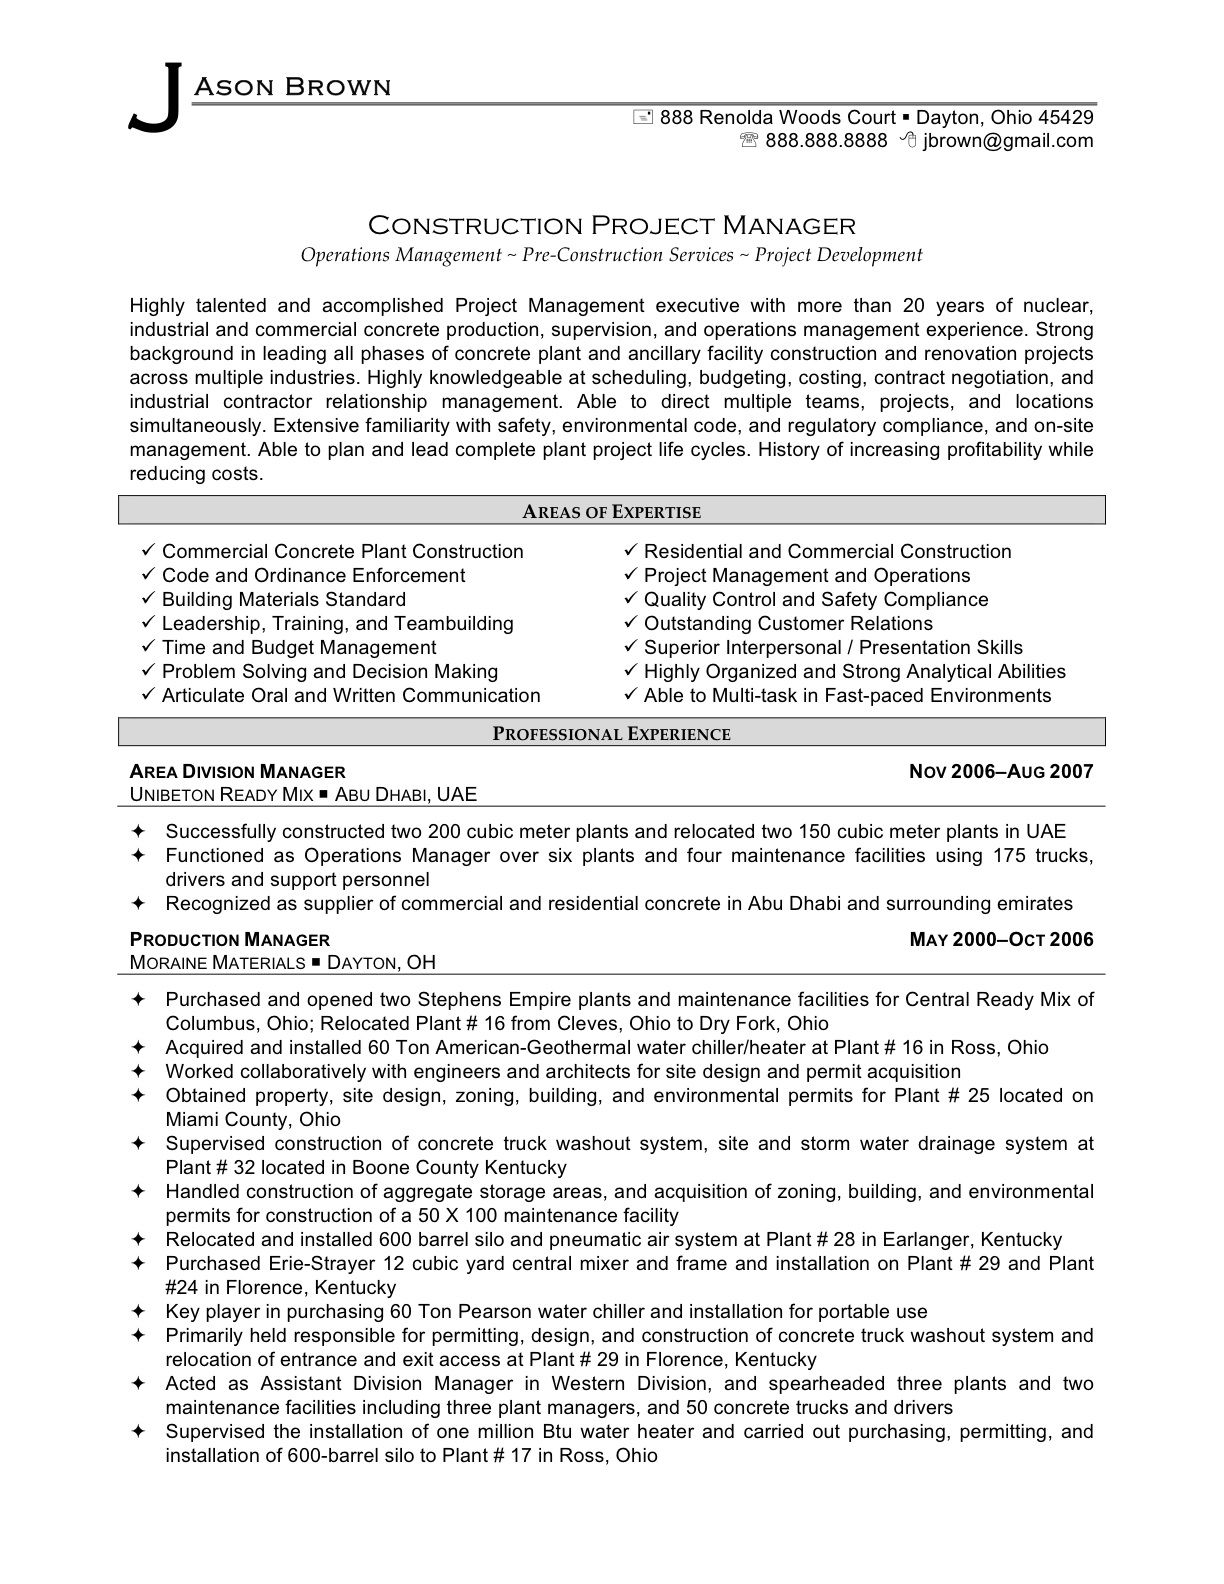 Professional Resume Samples Career Stuff Sample Resume Project